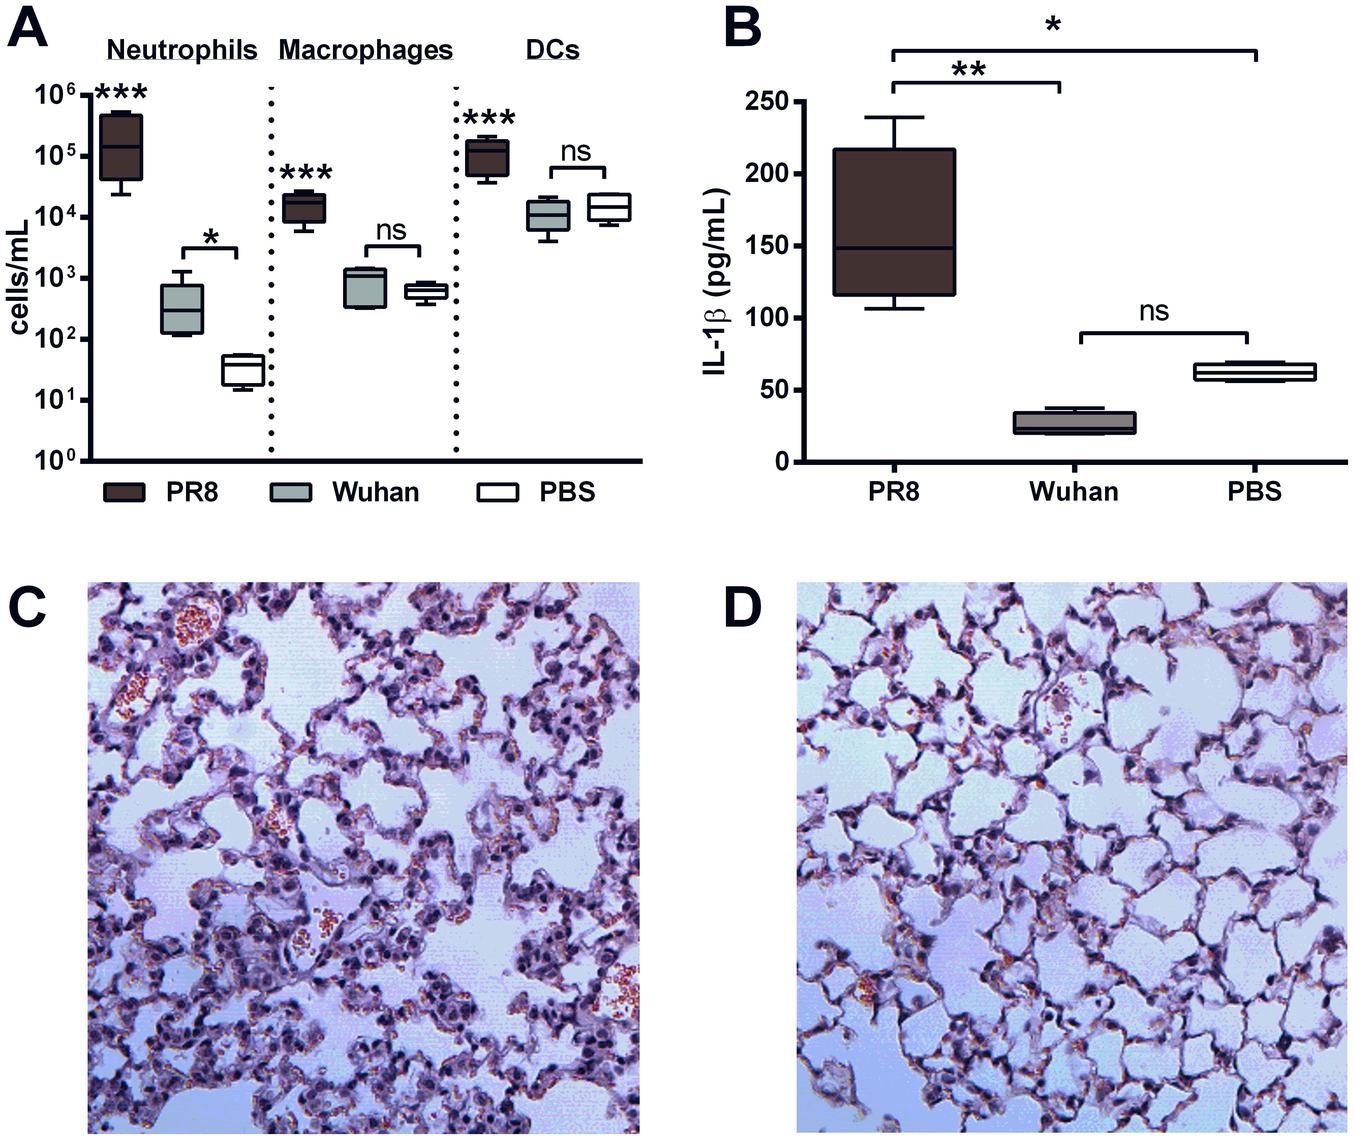 PB1-F2 peptide derived from pathogenic IAV increases cellularity and IL-1β secretion in the lungs.